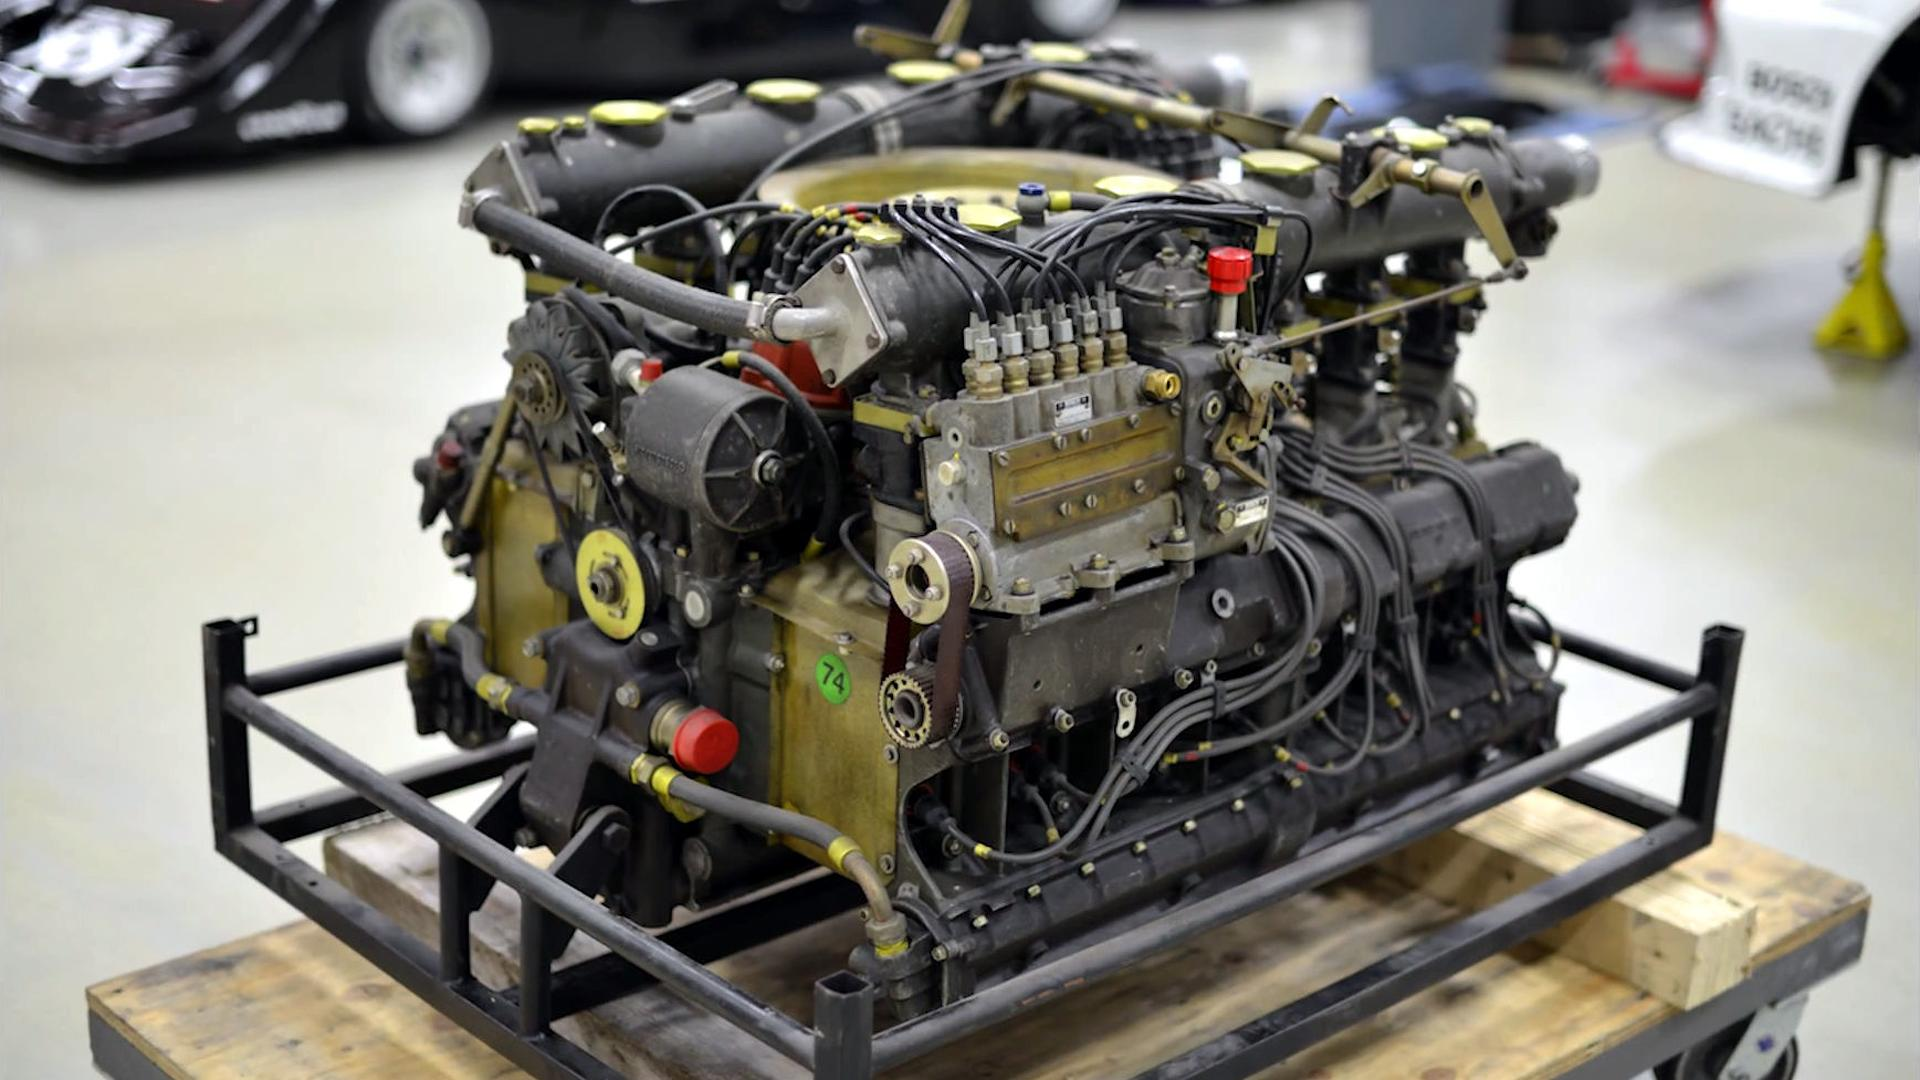 Watch A Porsche 917 Flat-12 Engine Rebuilt In 3 Minutes